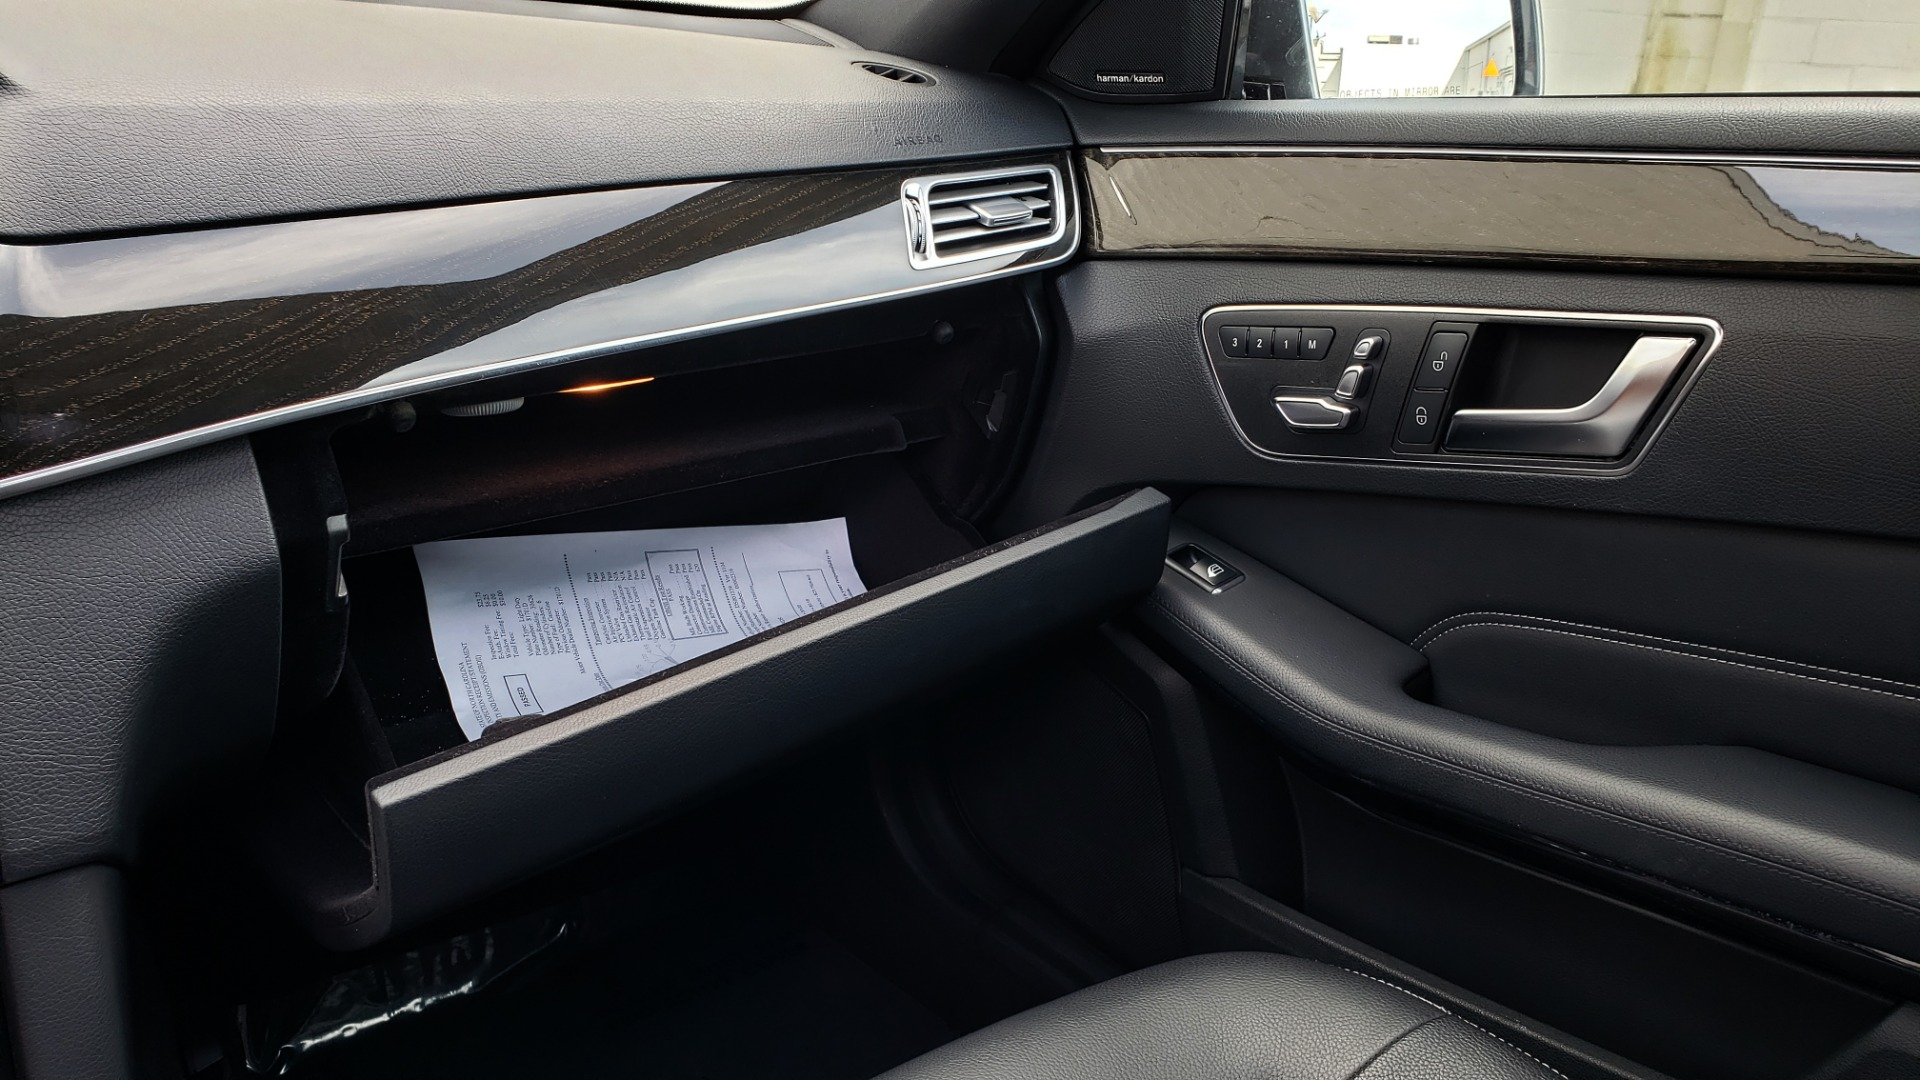 Used 2016 Mercedes-Benz E-CLASS E 350 PREM / KEYLESS-GO / NAV / SUNROOF / REARVIEW for sale Sold at Formula Imports in Charlotte NC 28227 48